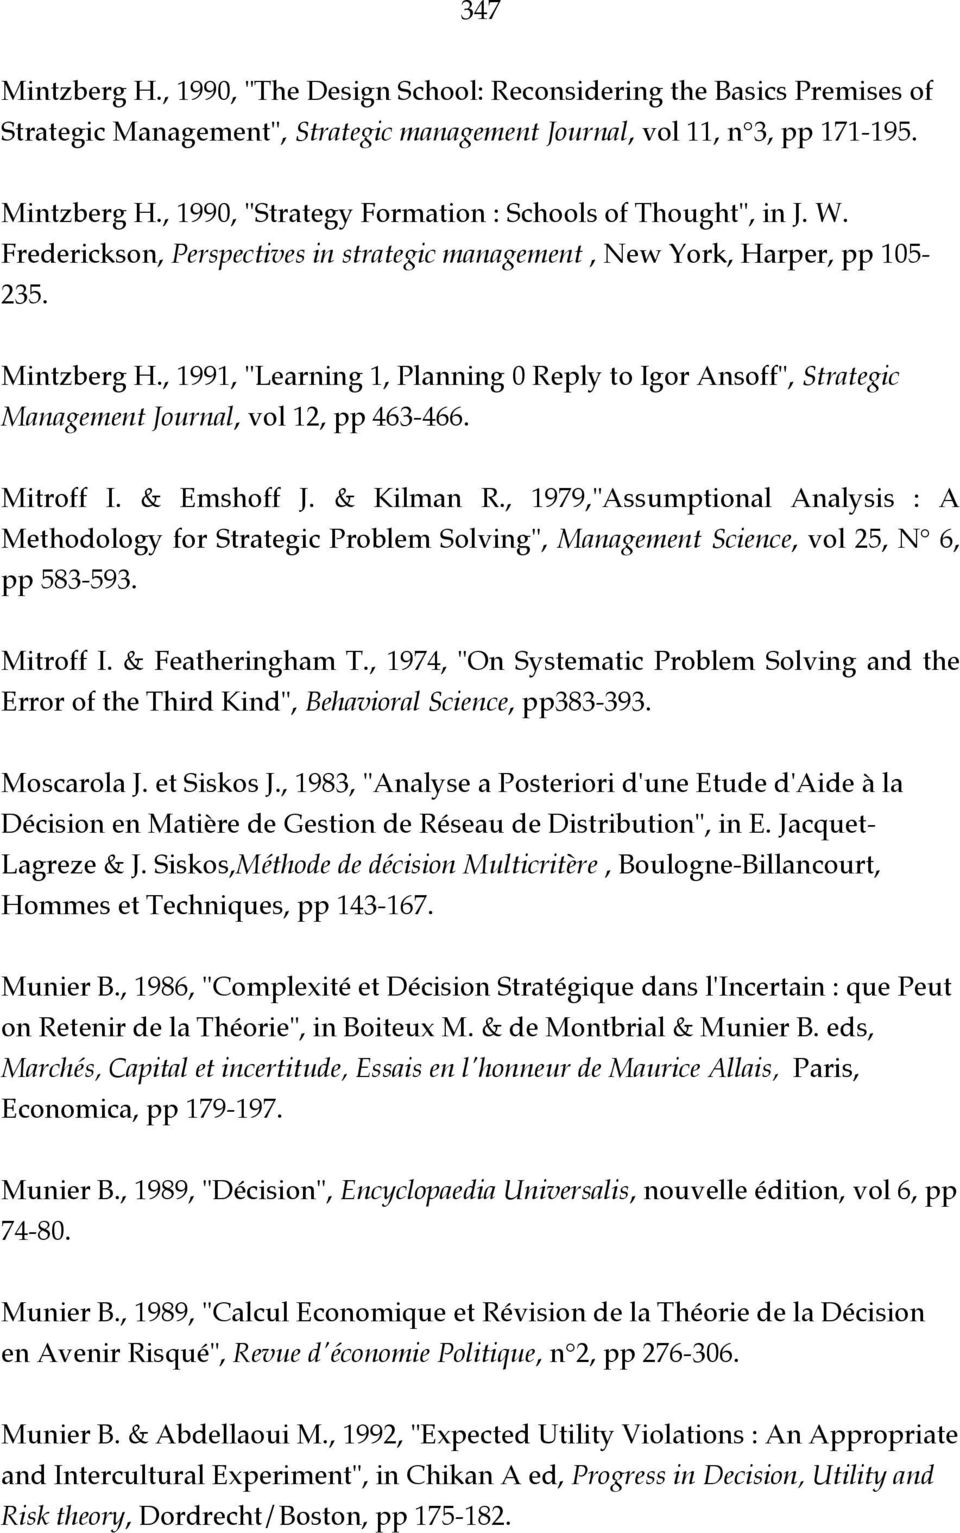 ", 1991, ""Learning 1, Planning 0 Reply to Igor Ansoff"", Strategic Management Journal, vol 12, pp 463-466. Mitroff I. & Emshoff J. & Kilman R."